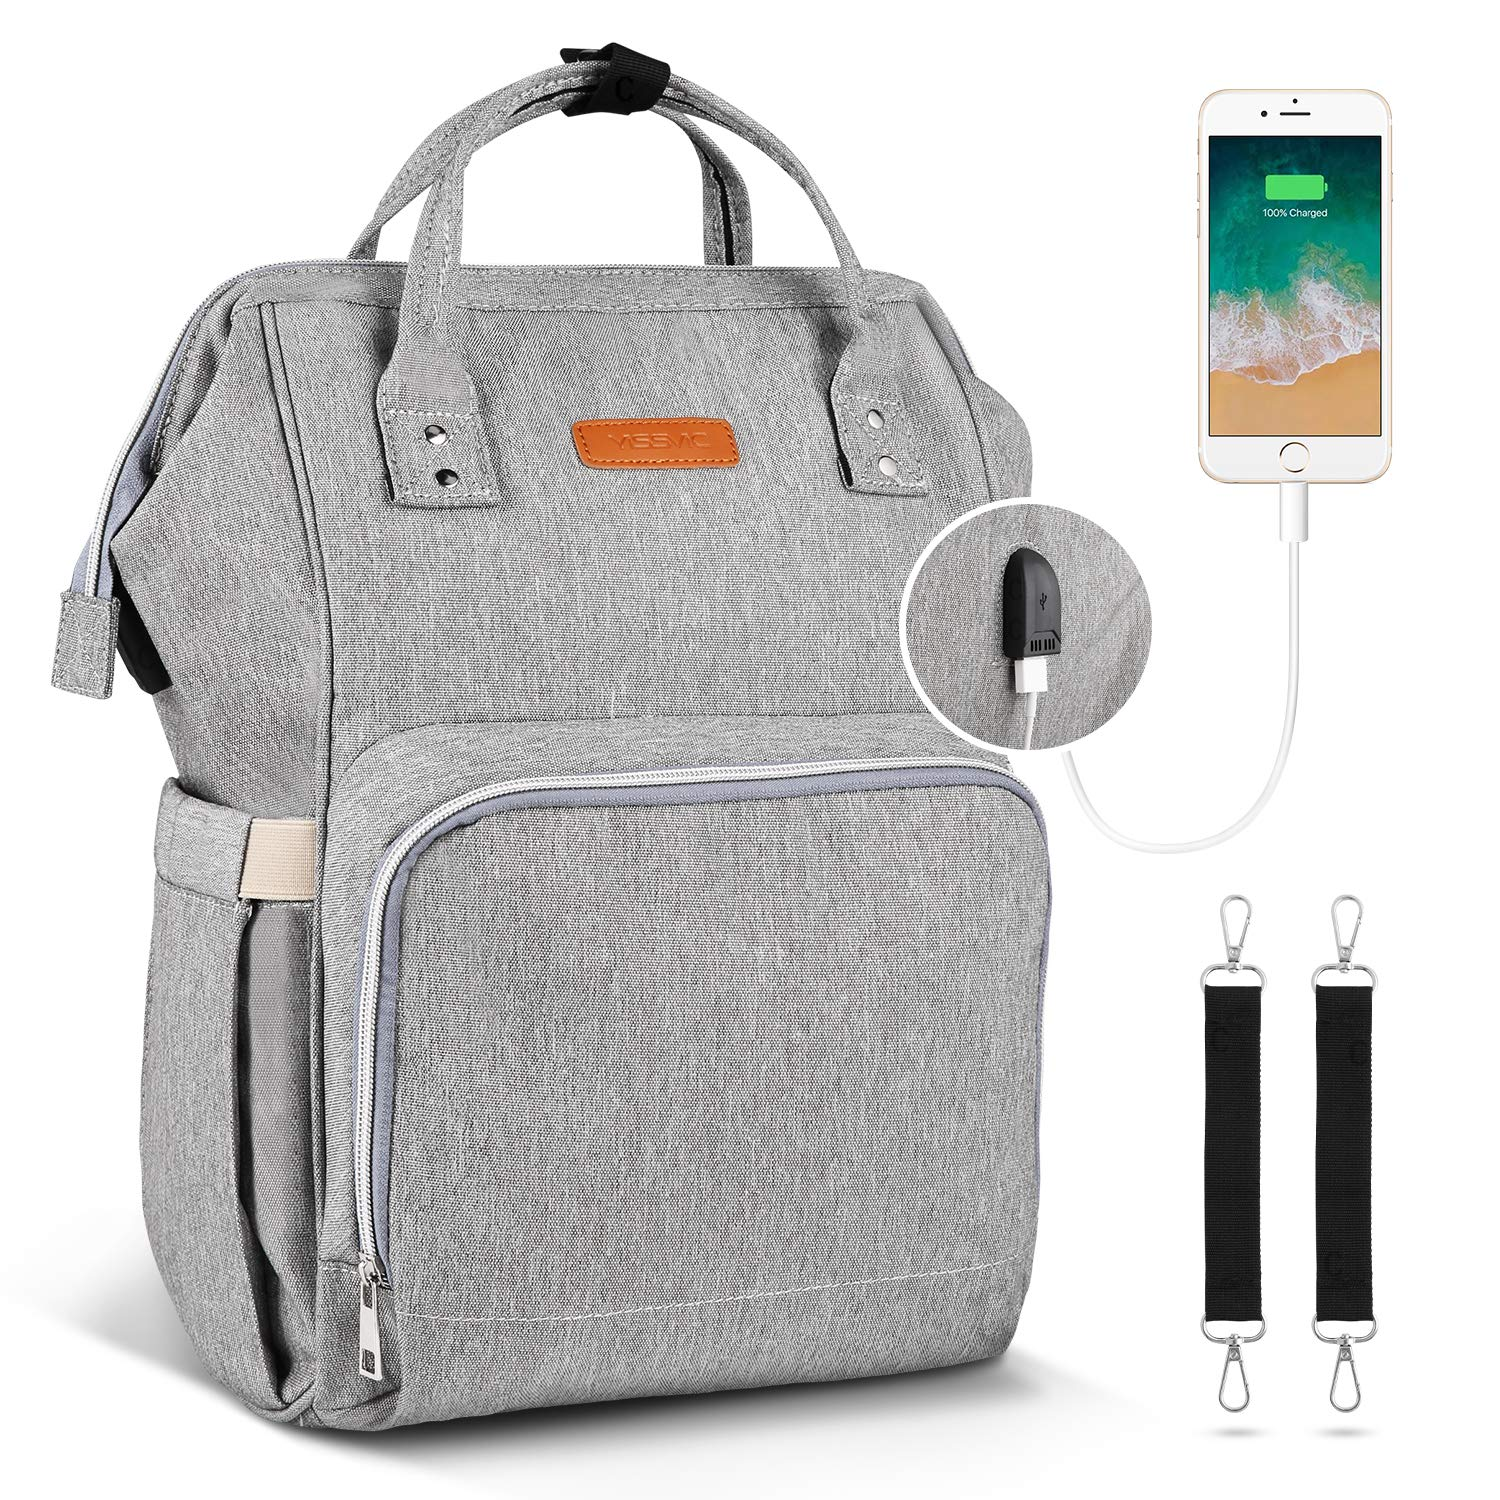 35779f27ea Amazon.com   YISSVIC Diaper Bag Backpack Multi-functional Nappy Bags with  Insulated Pockets for Baby Care